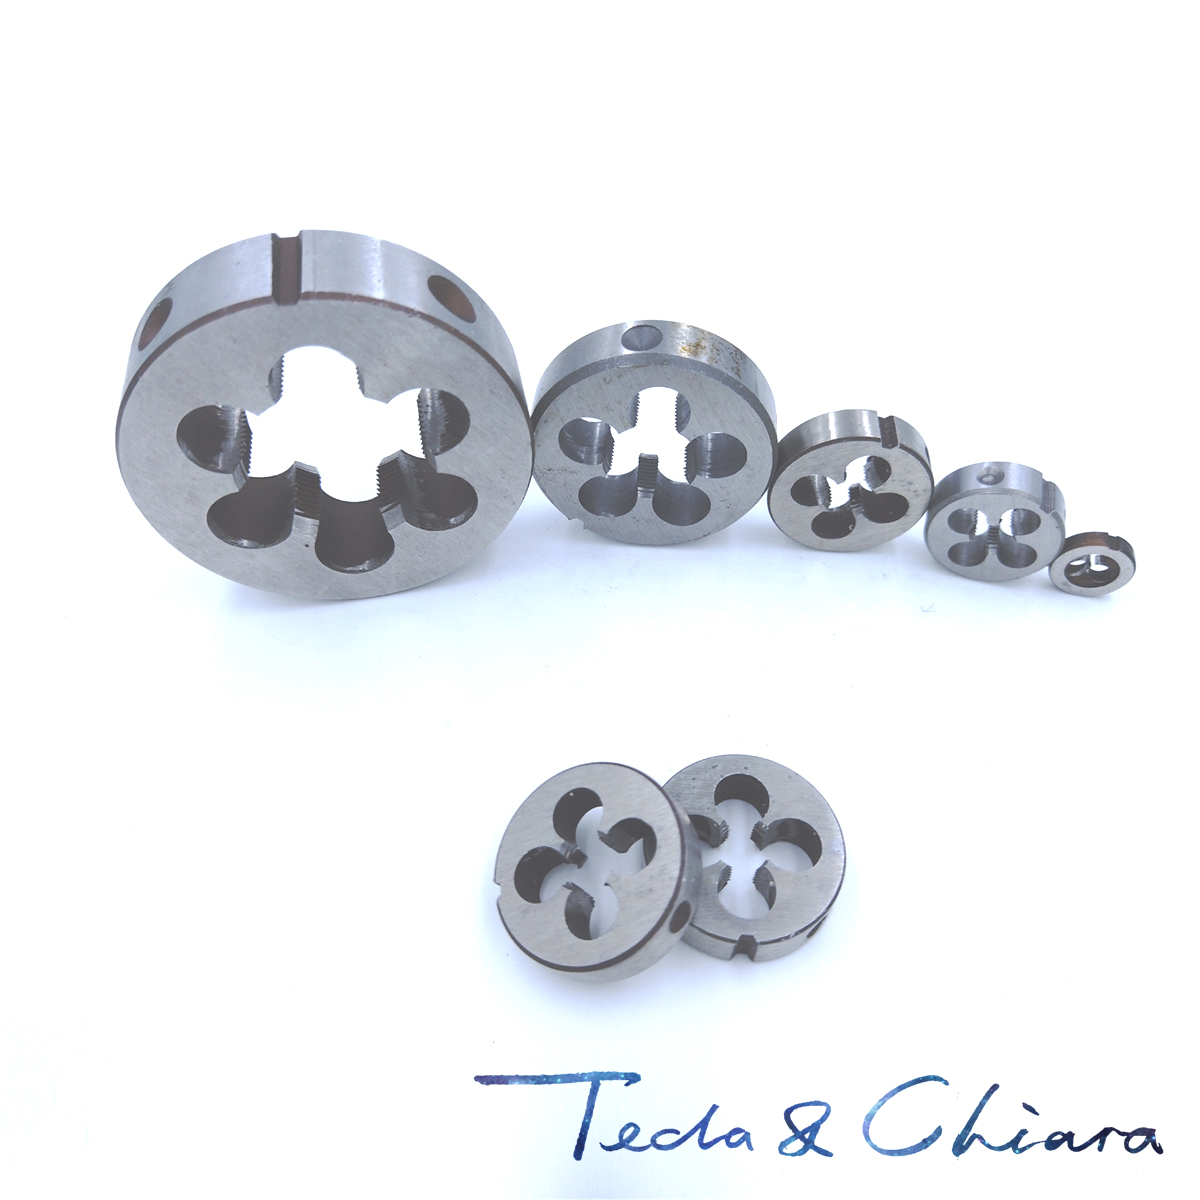 1Pc M12 M14 M16 X 1mm 1.25mm 1.5mm 1.75mm 2mm Metric Left Hand Die Pitch Threading Tools For Mold Machining * 1 1.25 1.5 1.75 2